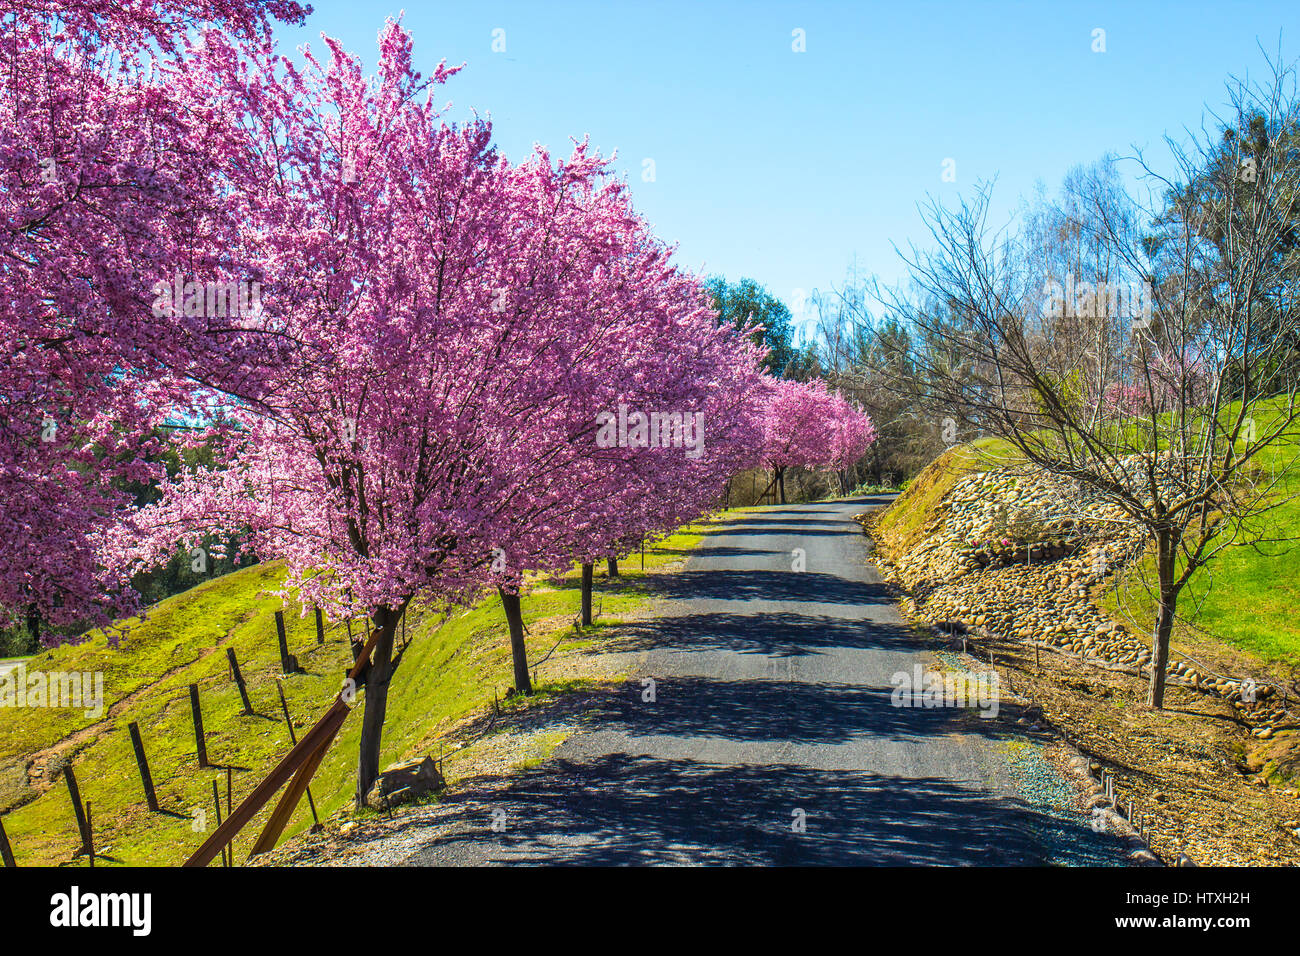 Cherry Blossom Trees Along Private Lane - Stock Image